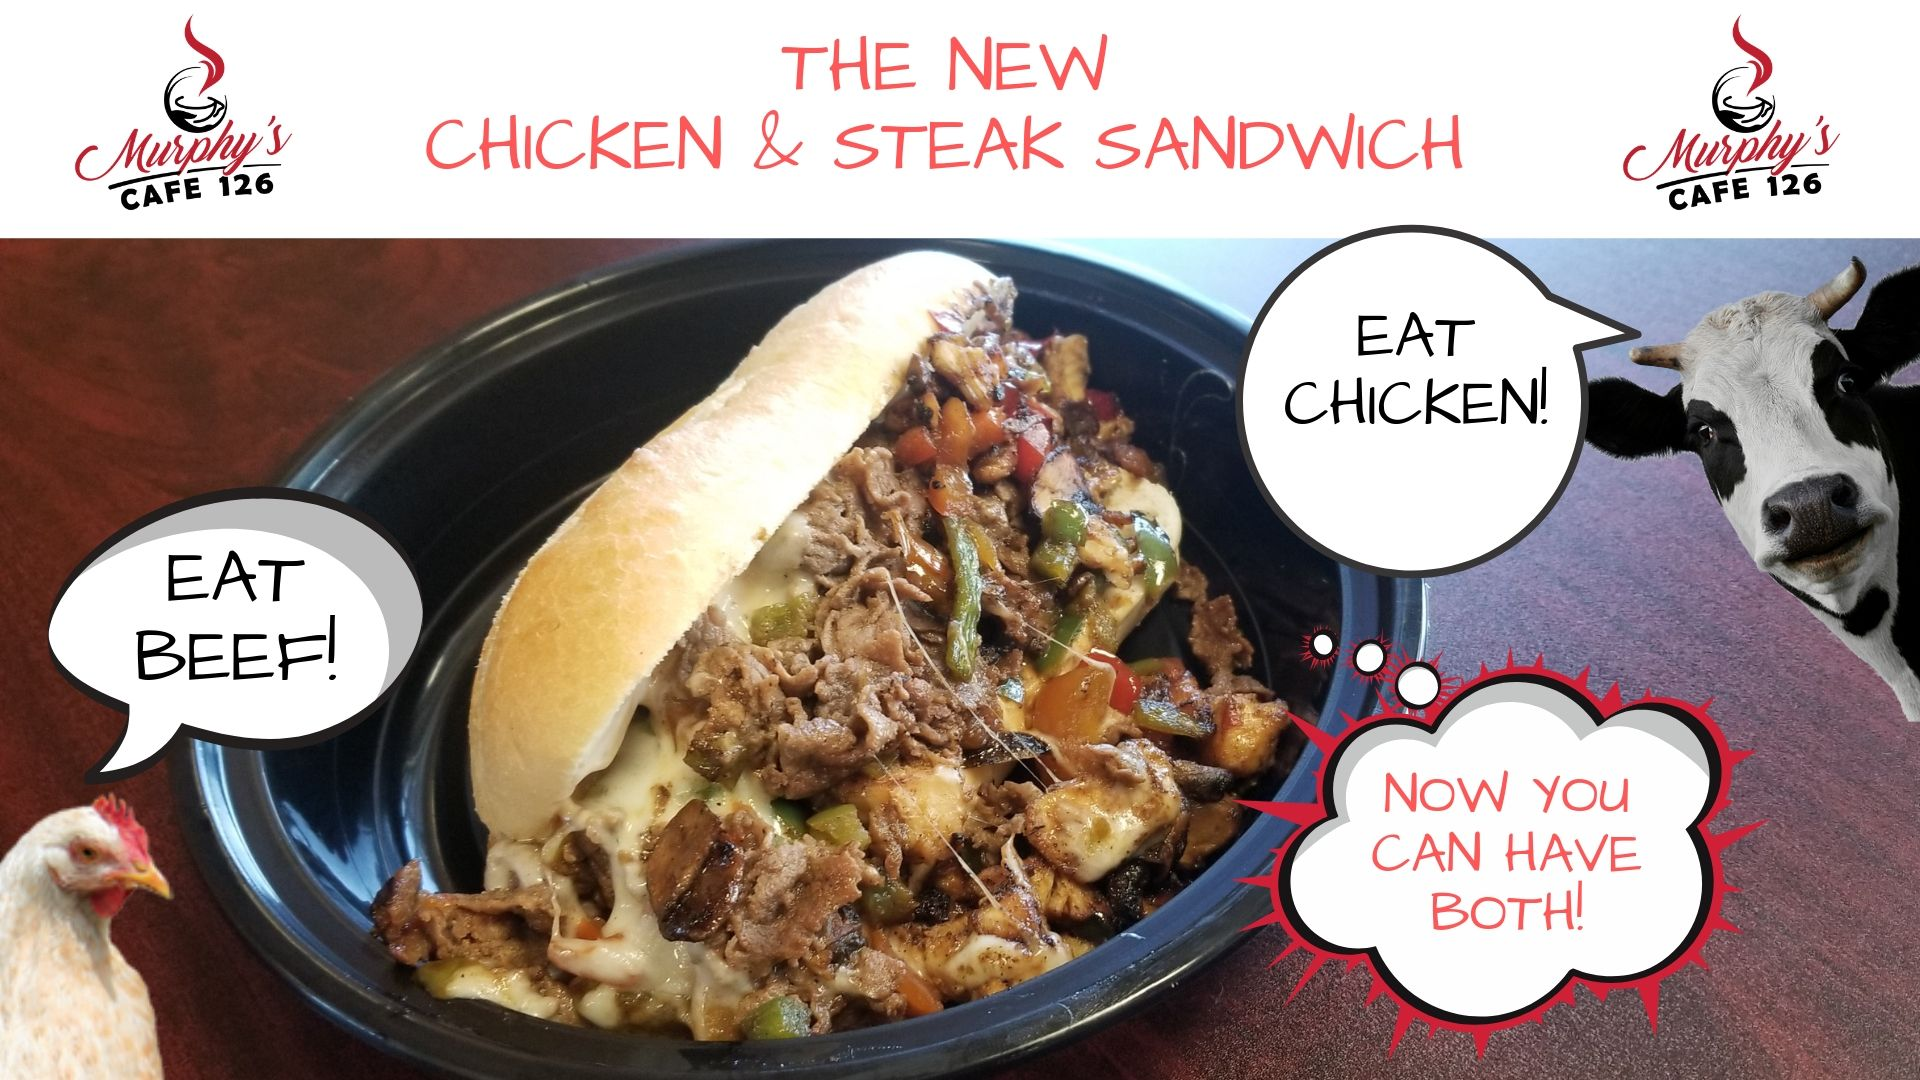 Chicken & Steak Sandwich